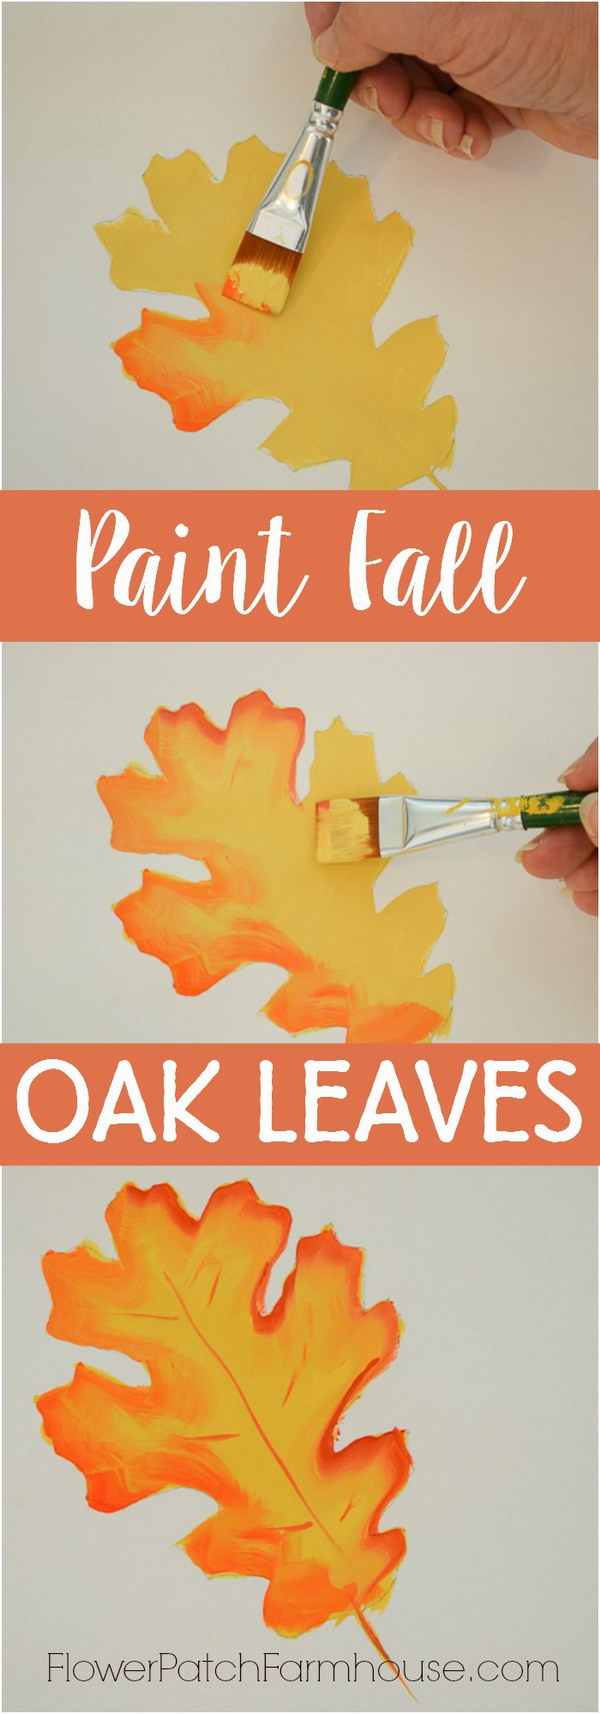 20 Easy Fall Crafts That Even Kids